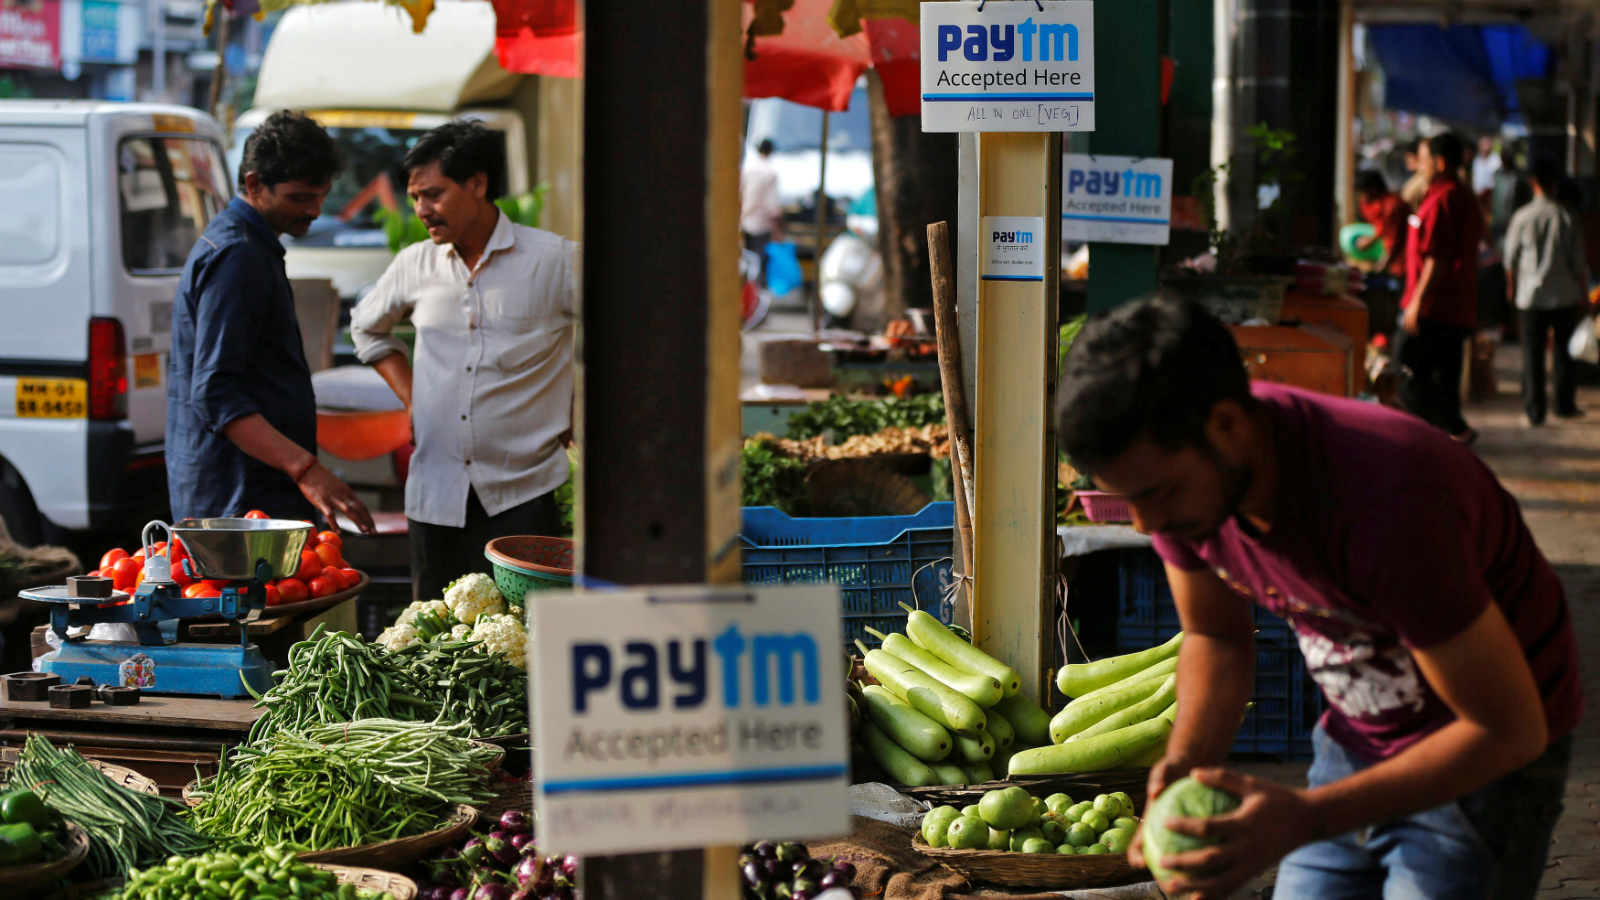 Advertisement boards of Paytm, a digital wallet company, are seen placed at stalls of roadside vegetable vendors as they wait for customers in Mumbai, India, November 19, 2016. Picture taken November 19, 2016.